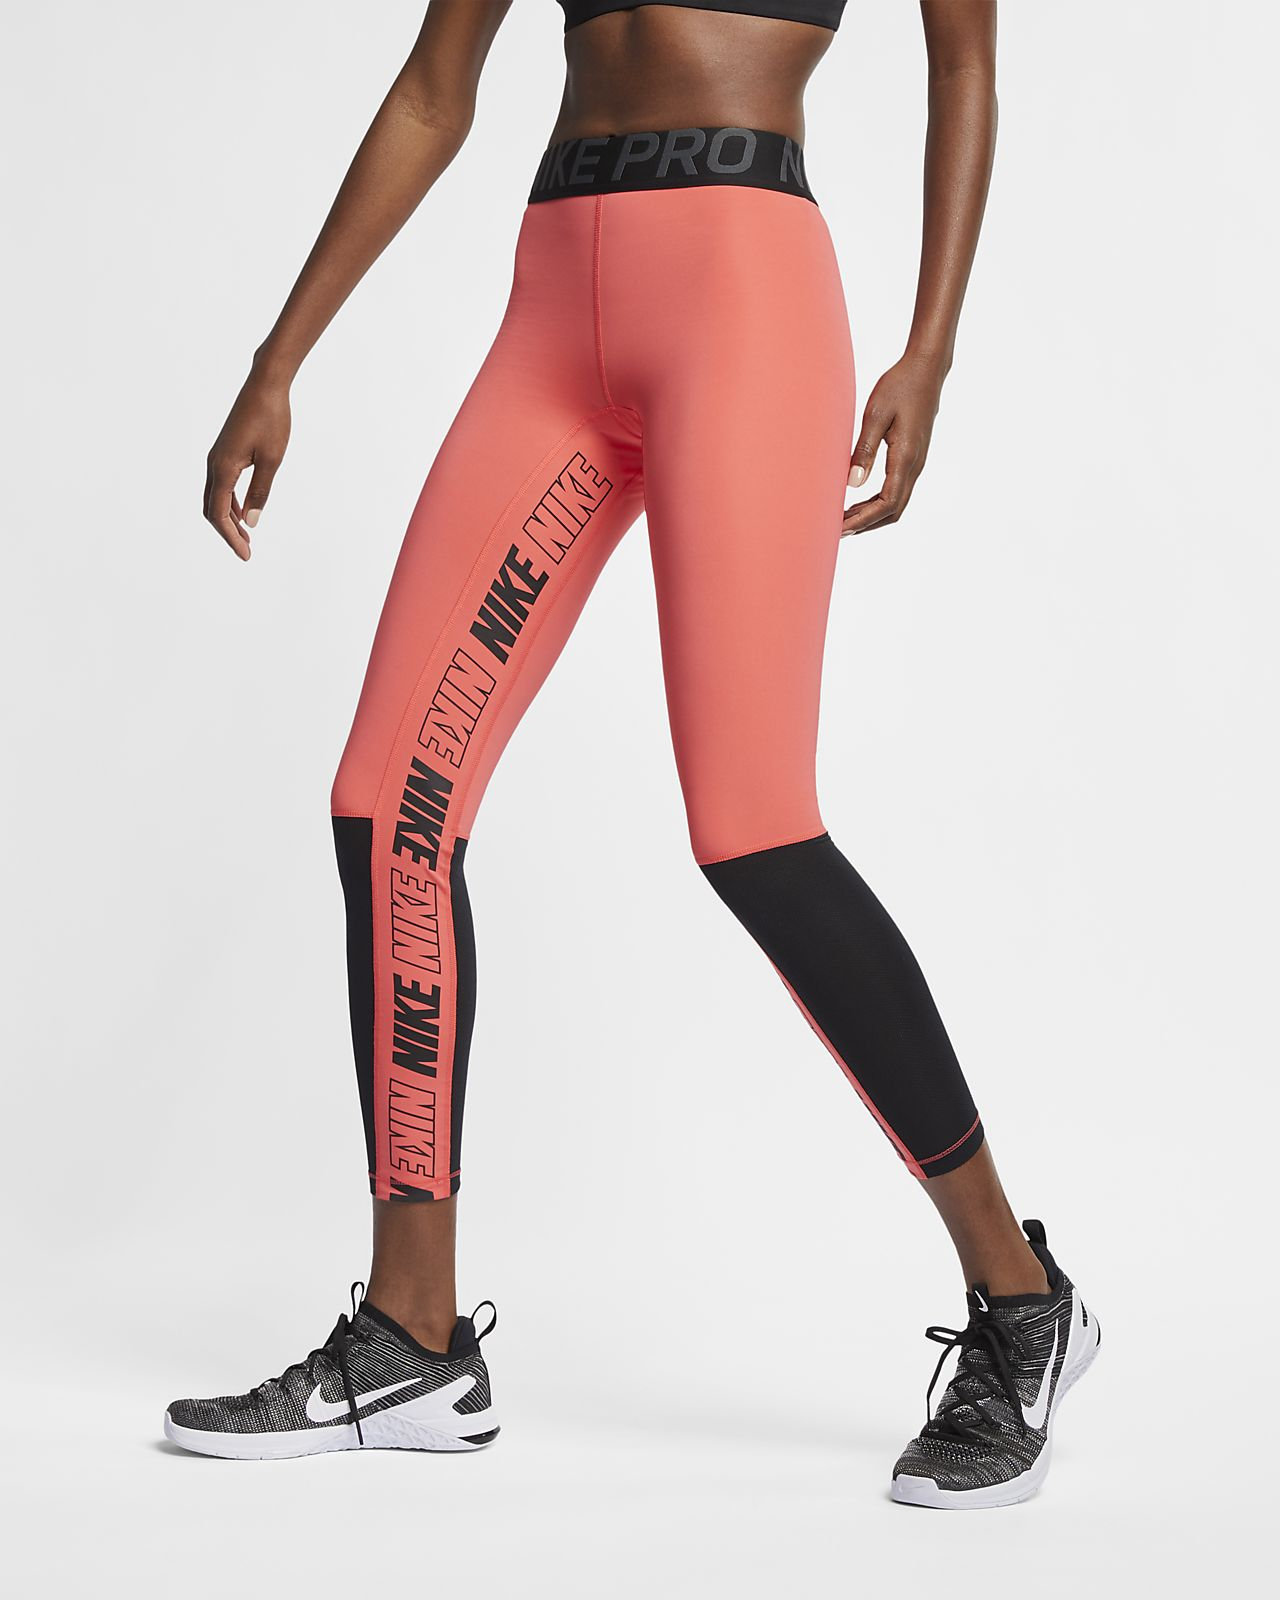 save off 55e5c f1741 ... Nike Pro Women s Graphic Tights